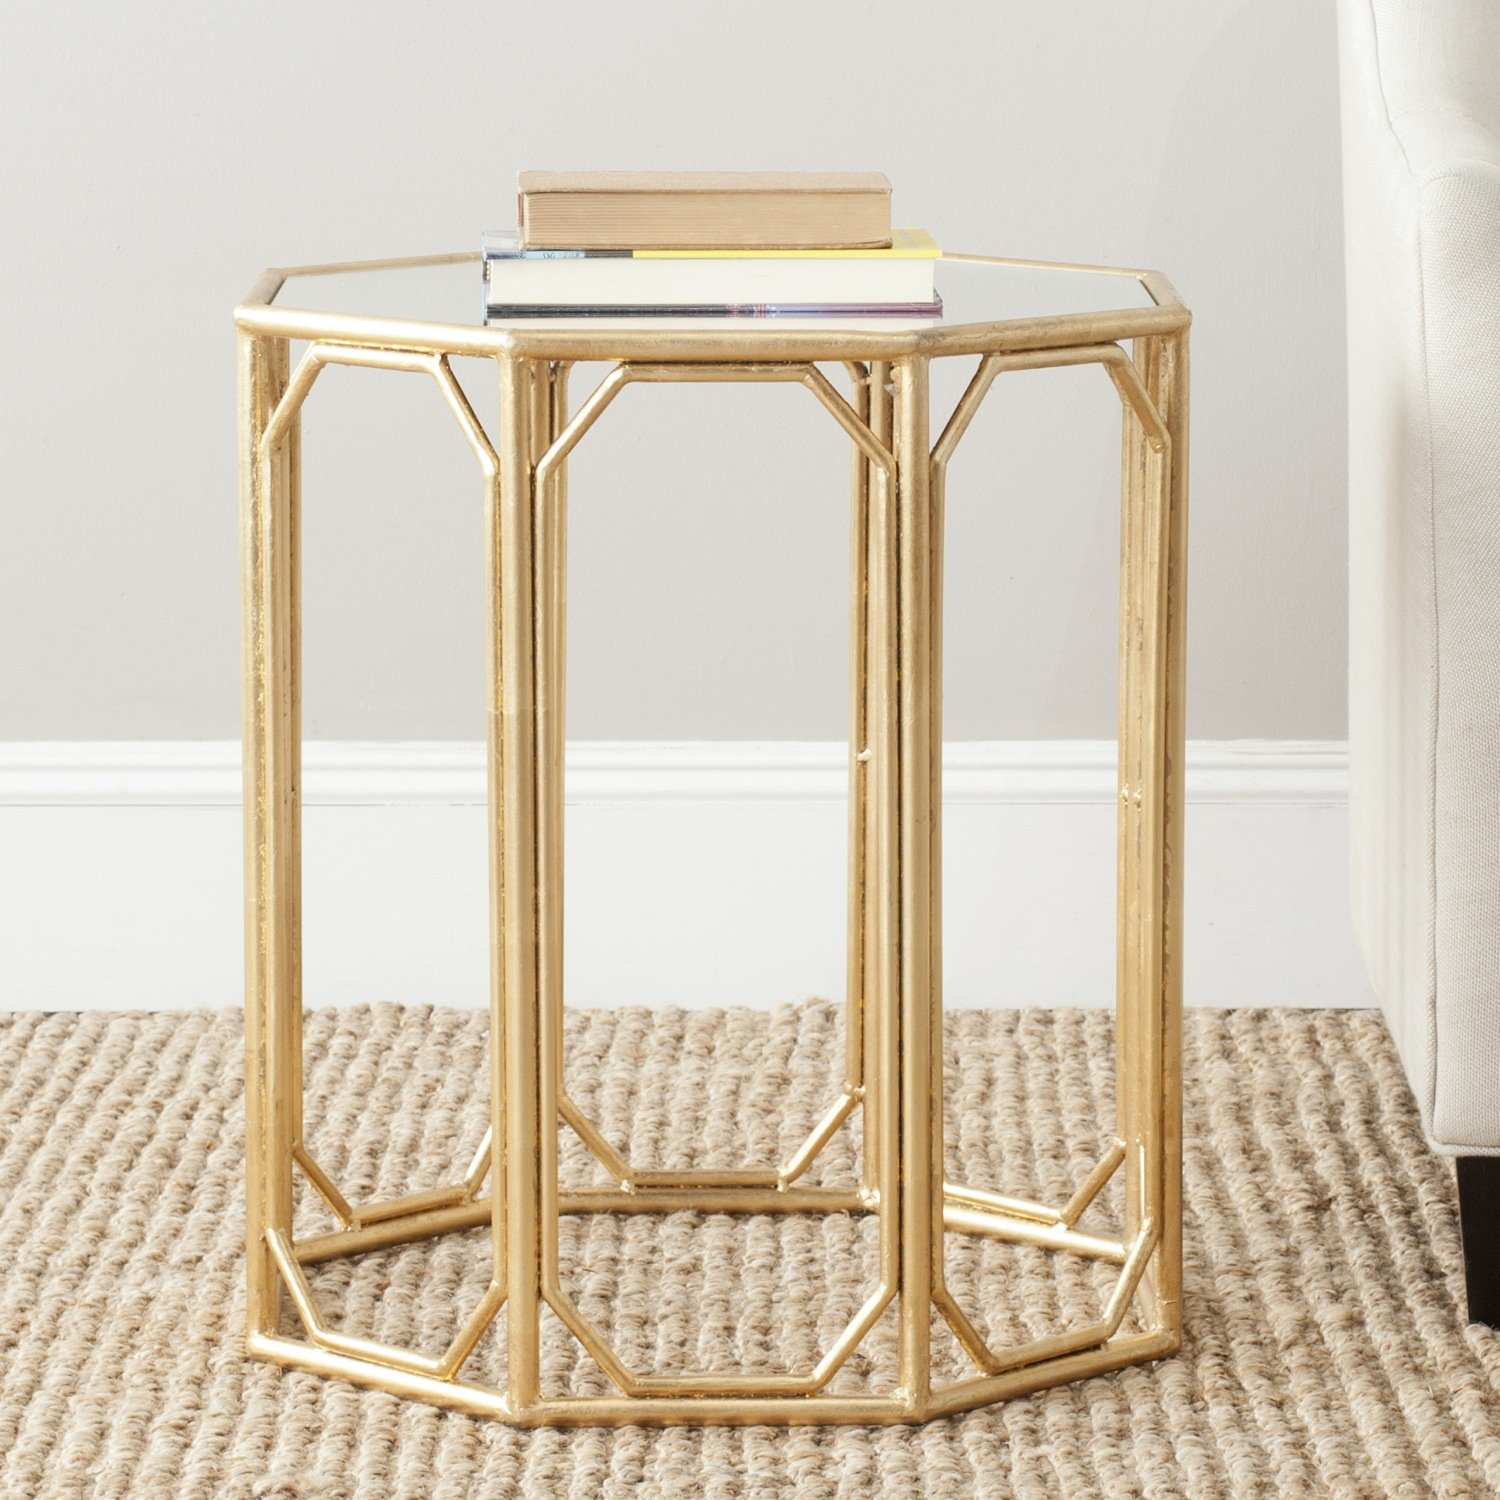 safavieh treasures muriel gold mirror top accent table free tables with matching mirrors shipping today pedestal dining room turquoise pieces front entry contemporary wood side